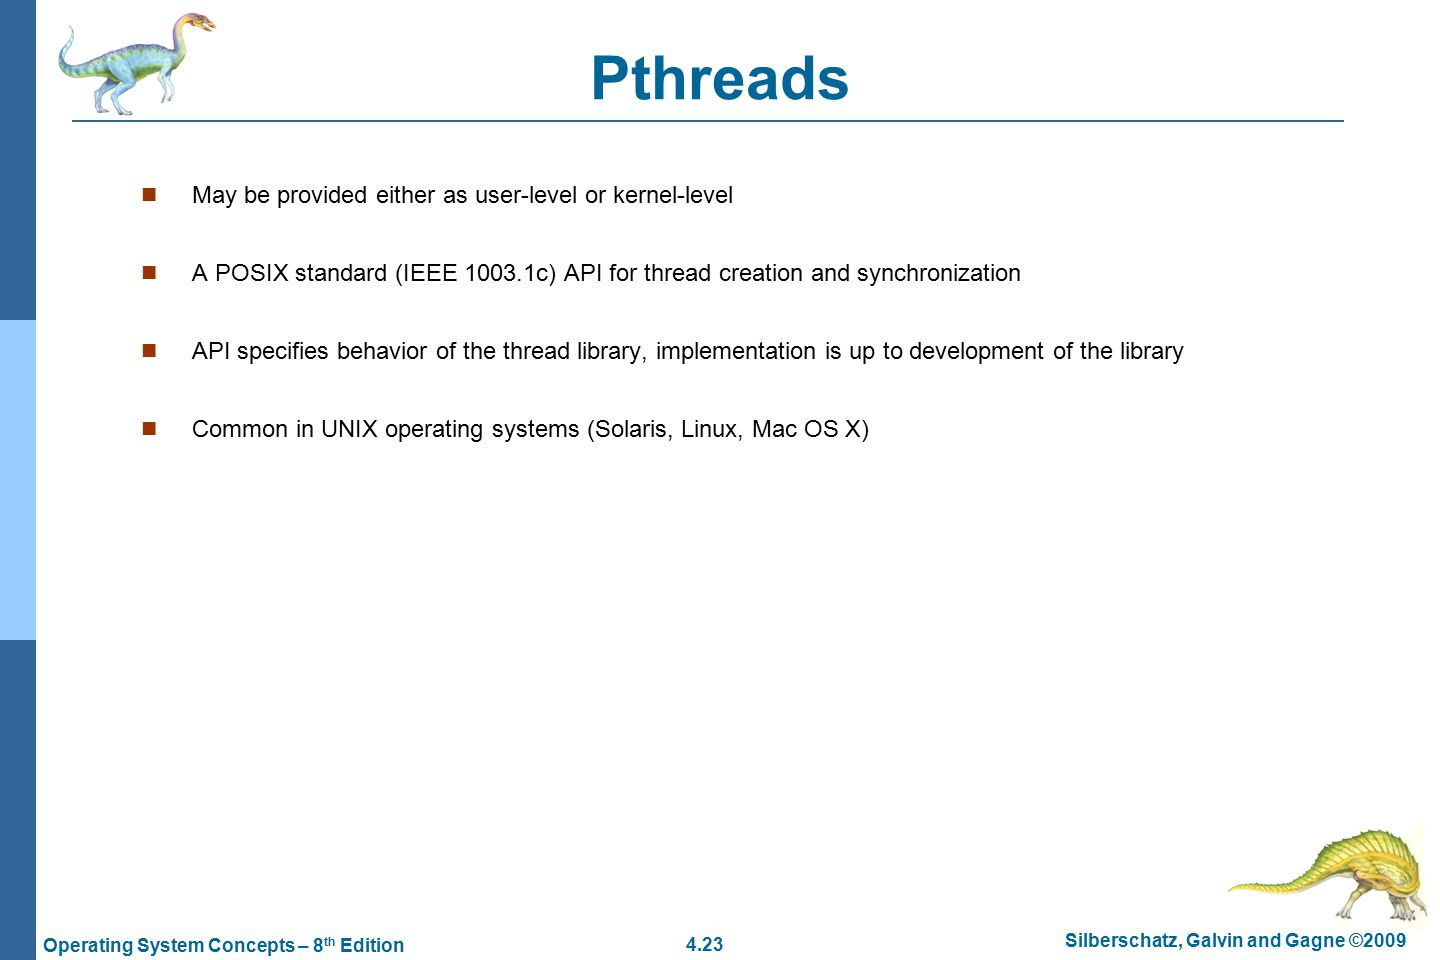 4.23 Silberschatz, Galvin and Gagne ©2009 Operating System Concepts – 8 th Edition Pthreads May be provided either as user-level or kernel-level A POSIX standard (IEEE c) API for thread creation and synchronization API specifies behavior of the thread library, implementation is up to development of the library Common in UNIX operating systems (Solaris, Linux, Mac OS X)